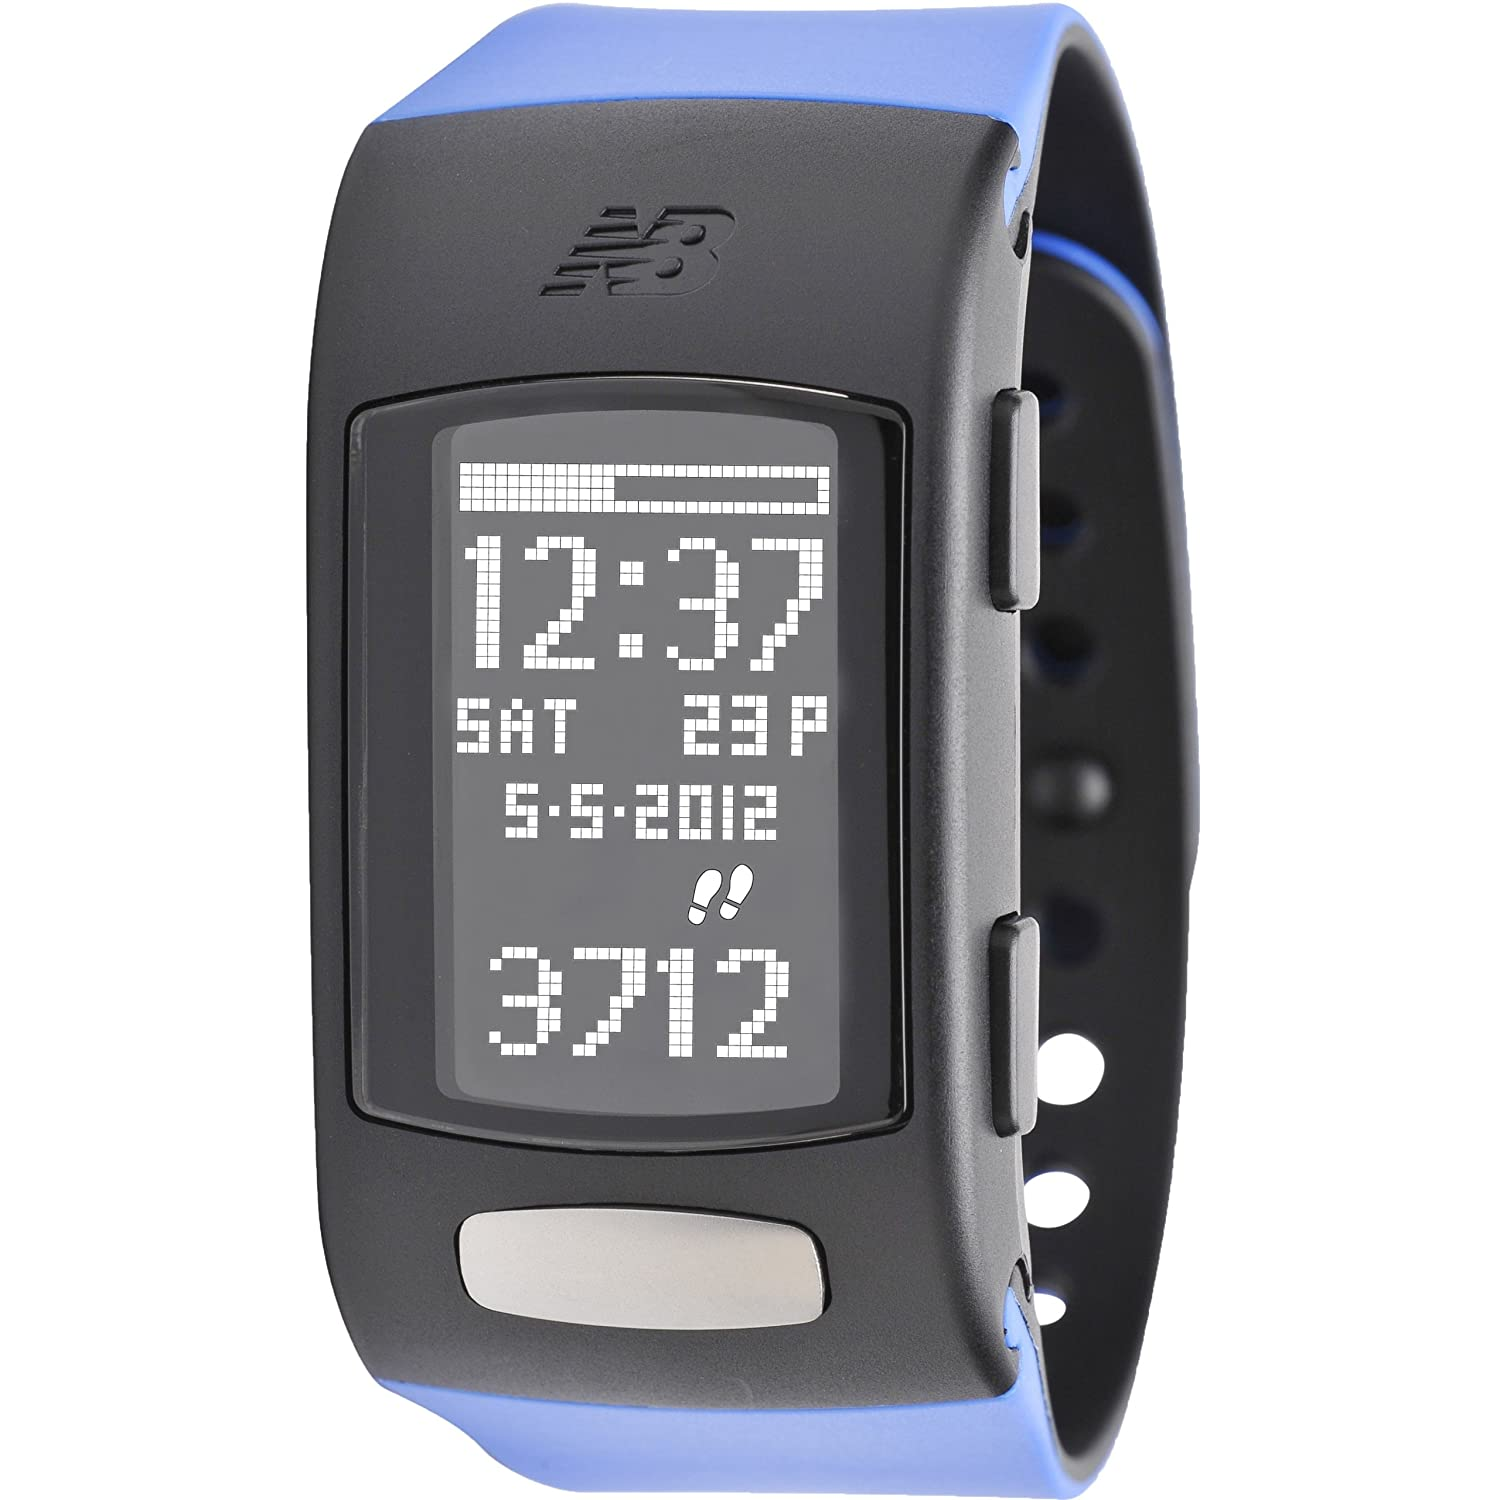 Amazon.com : New Balance LifeTRNr Heart Rate Calorie Monitor, Blue ...